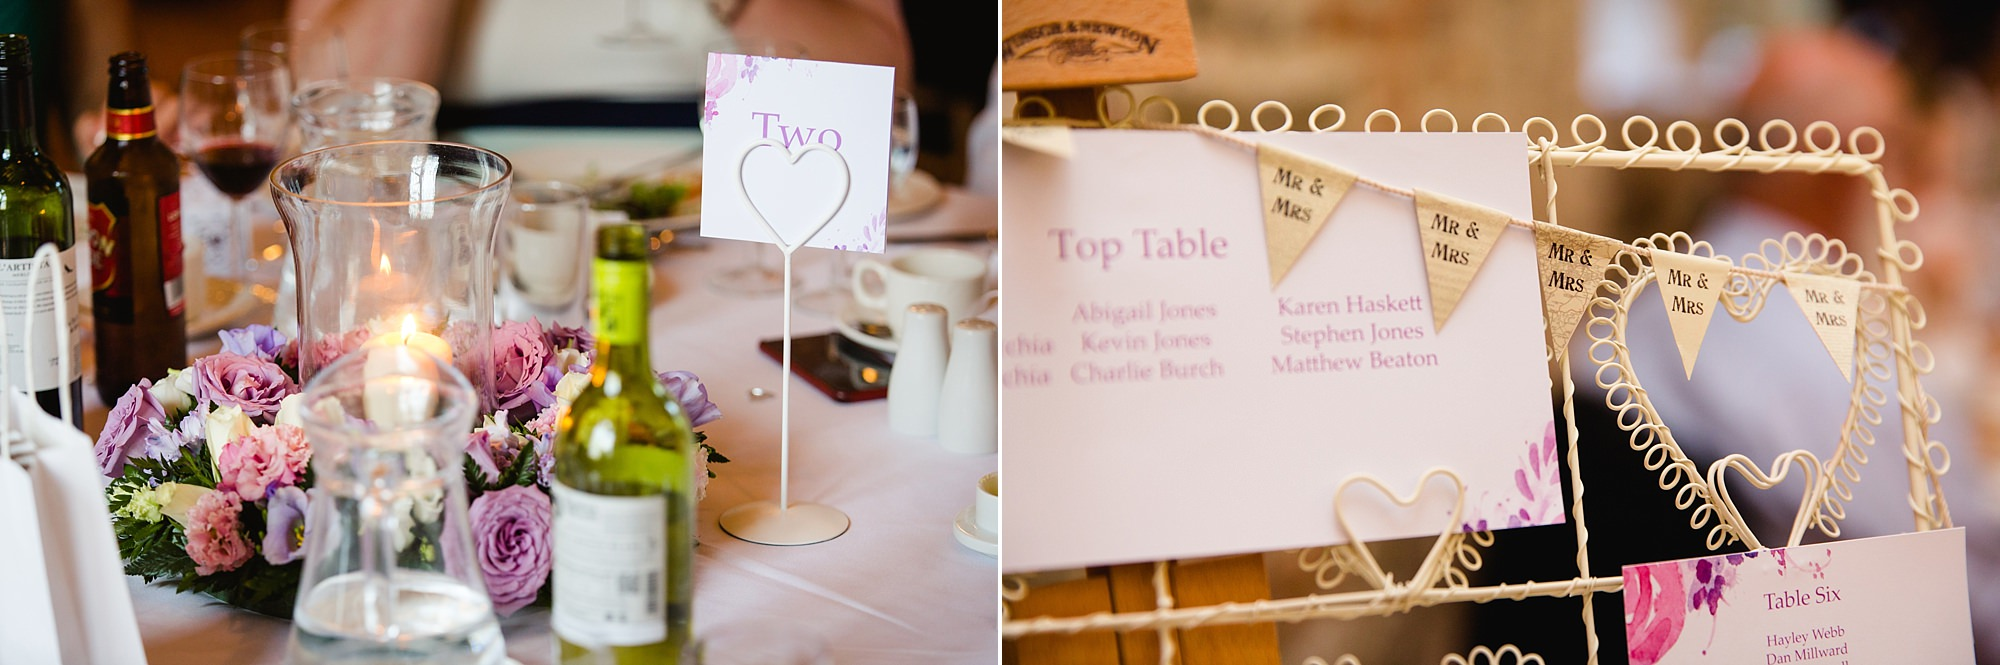 Canon Lane Chichester wedding table decorations